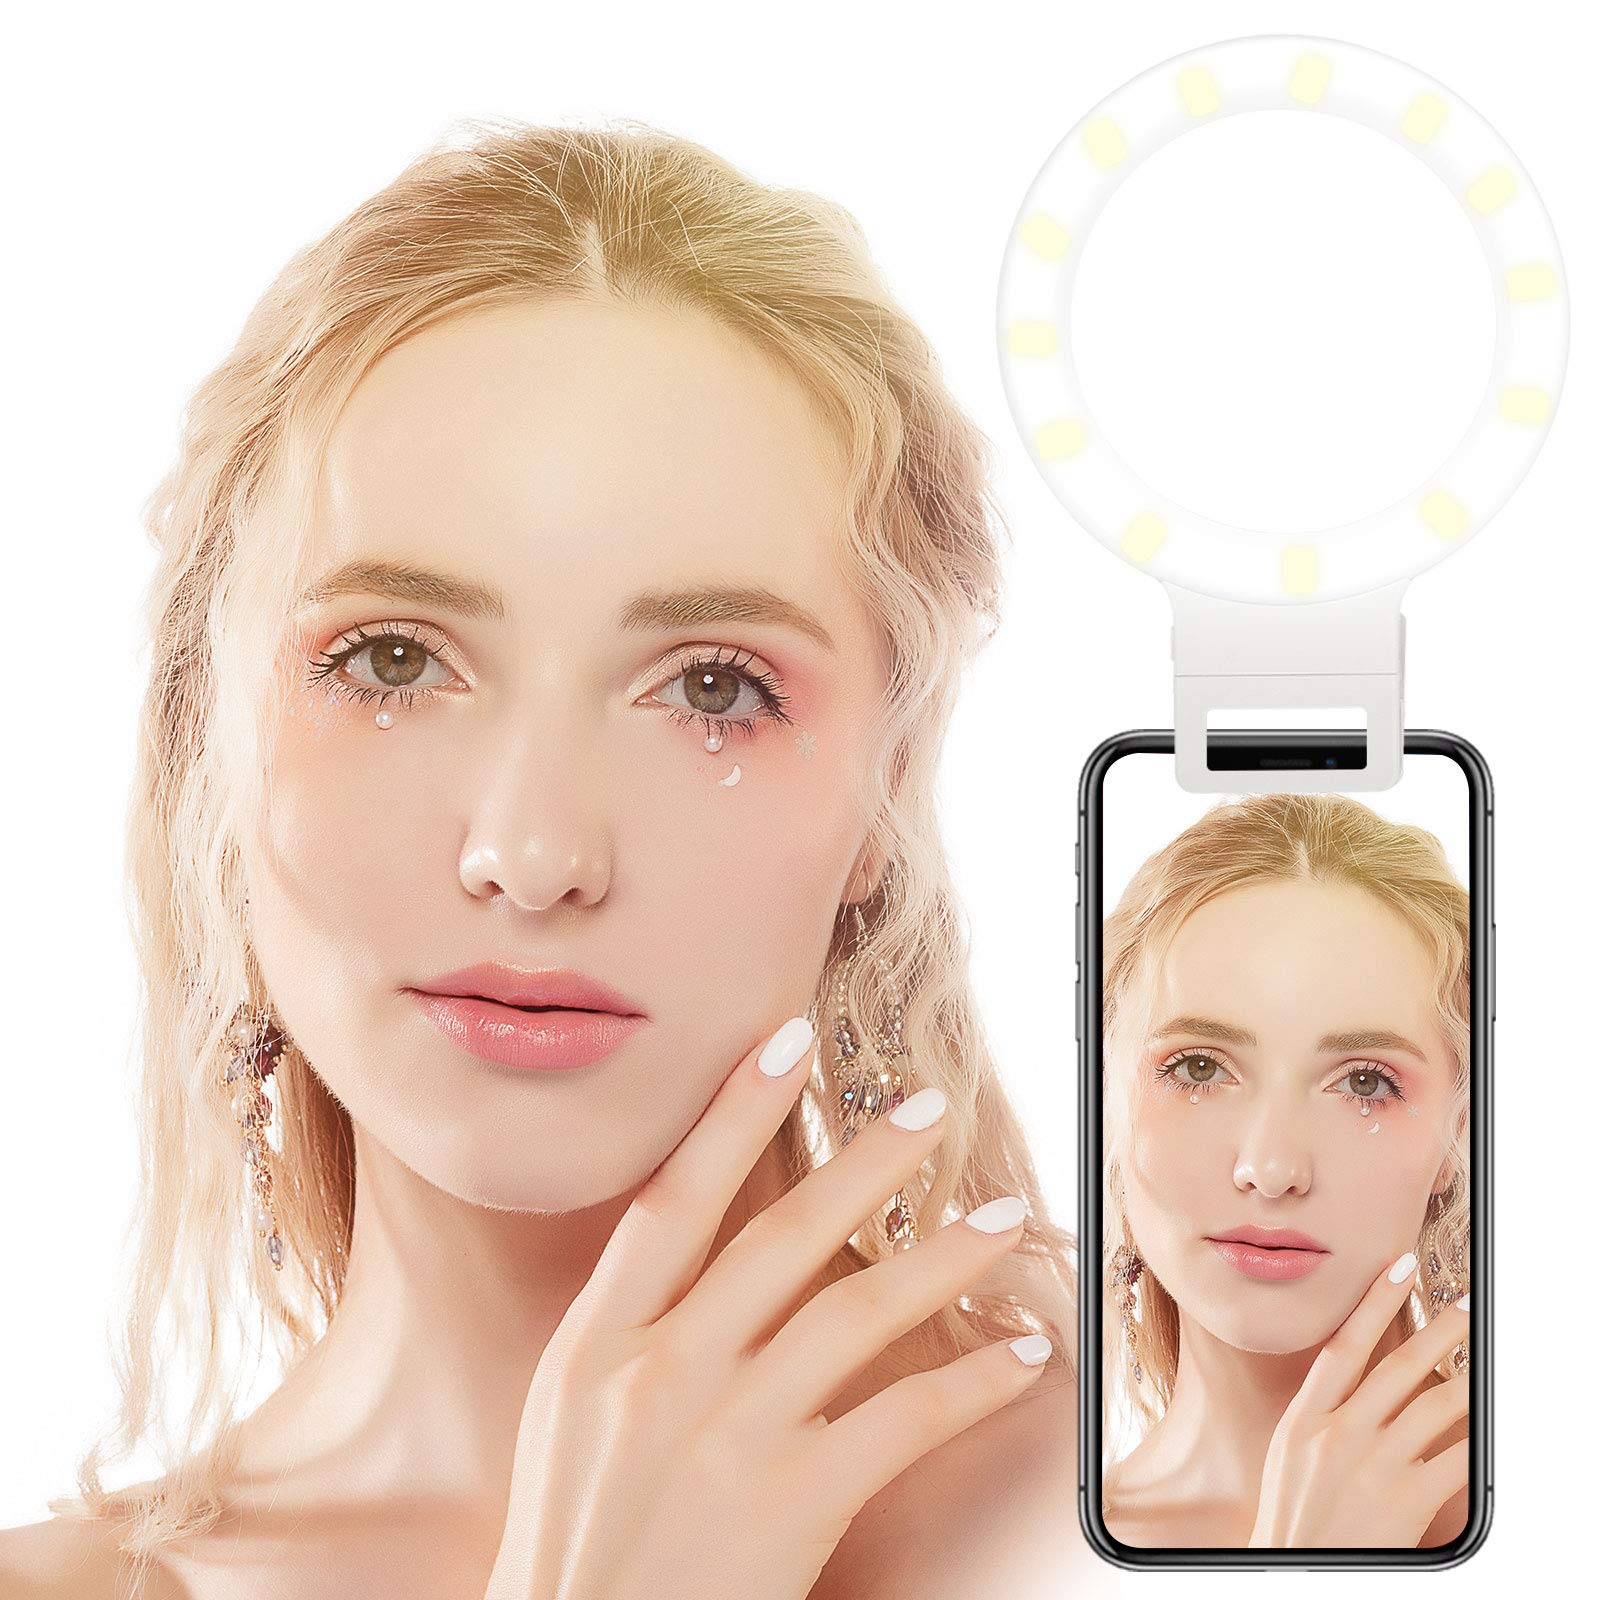 Linkstyle Selfie Ring Light for Phone, 36LEDs Selfie LED Camera Light [Rechargeable & 3-Level Brightness] Compatible with Iphone XS/XS Max/XR/X/8/7 Plus/6 Plus/Samsung Galaxy Note 9 S8 Plus S7 S6 Edge